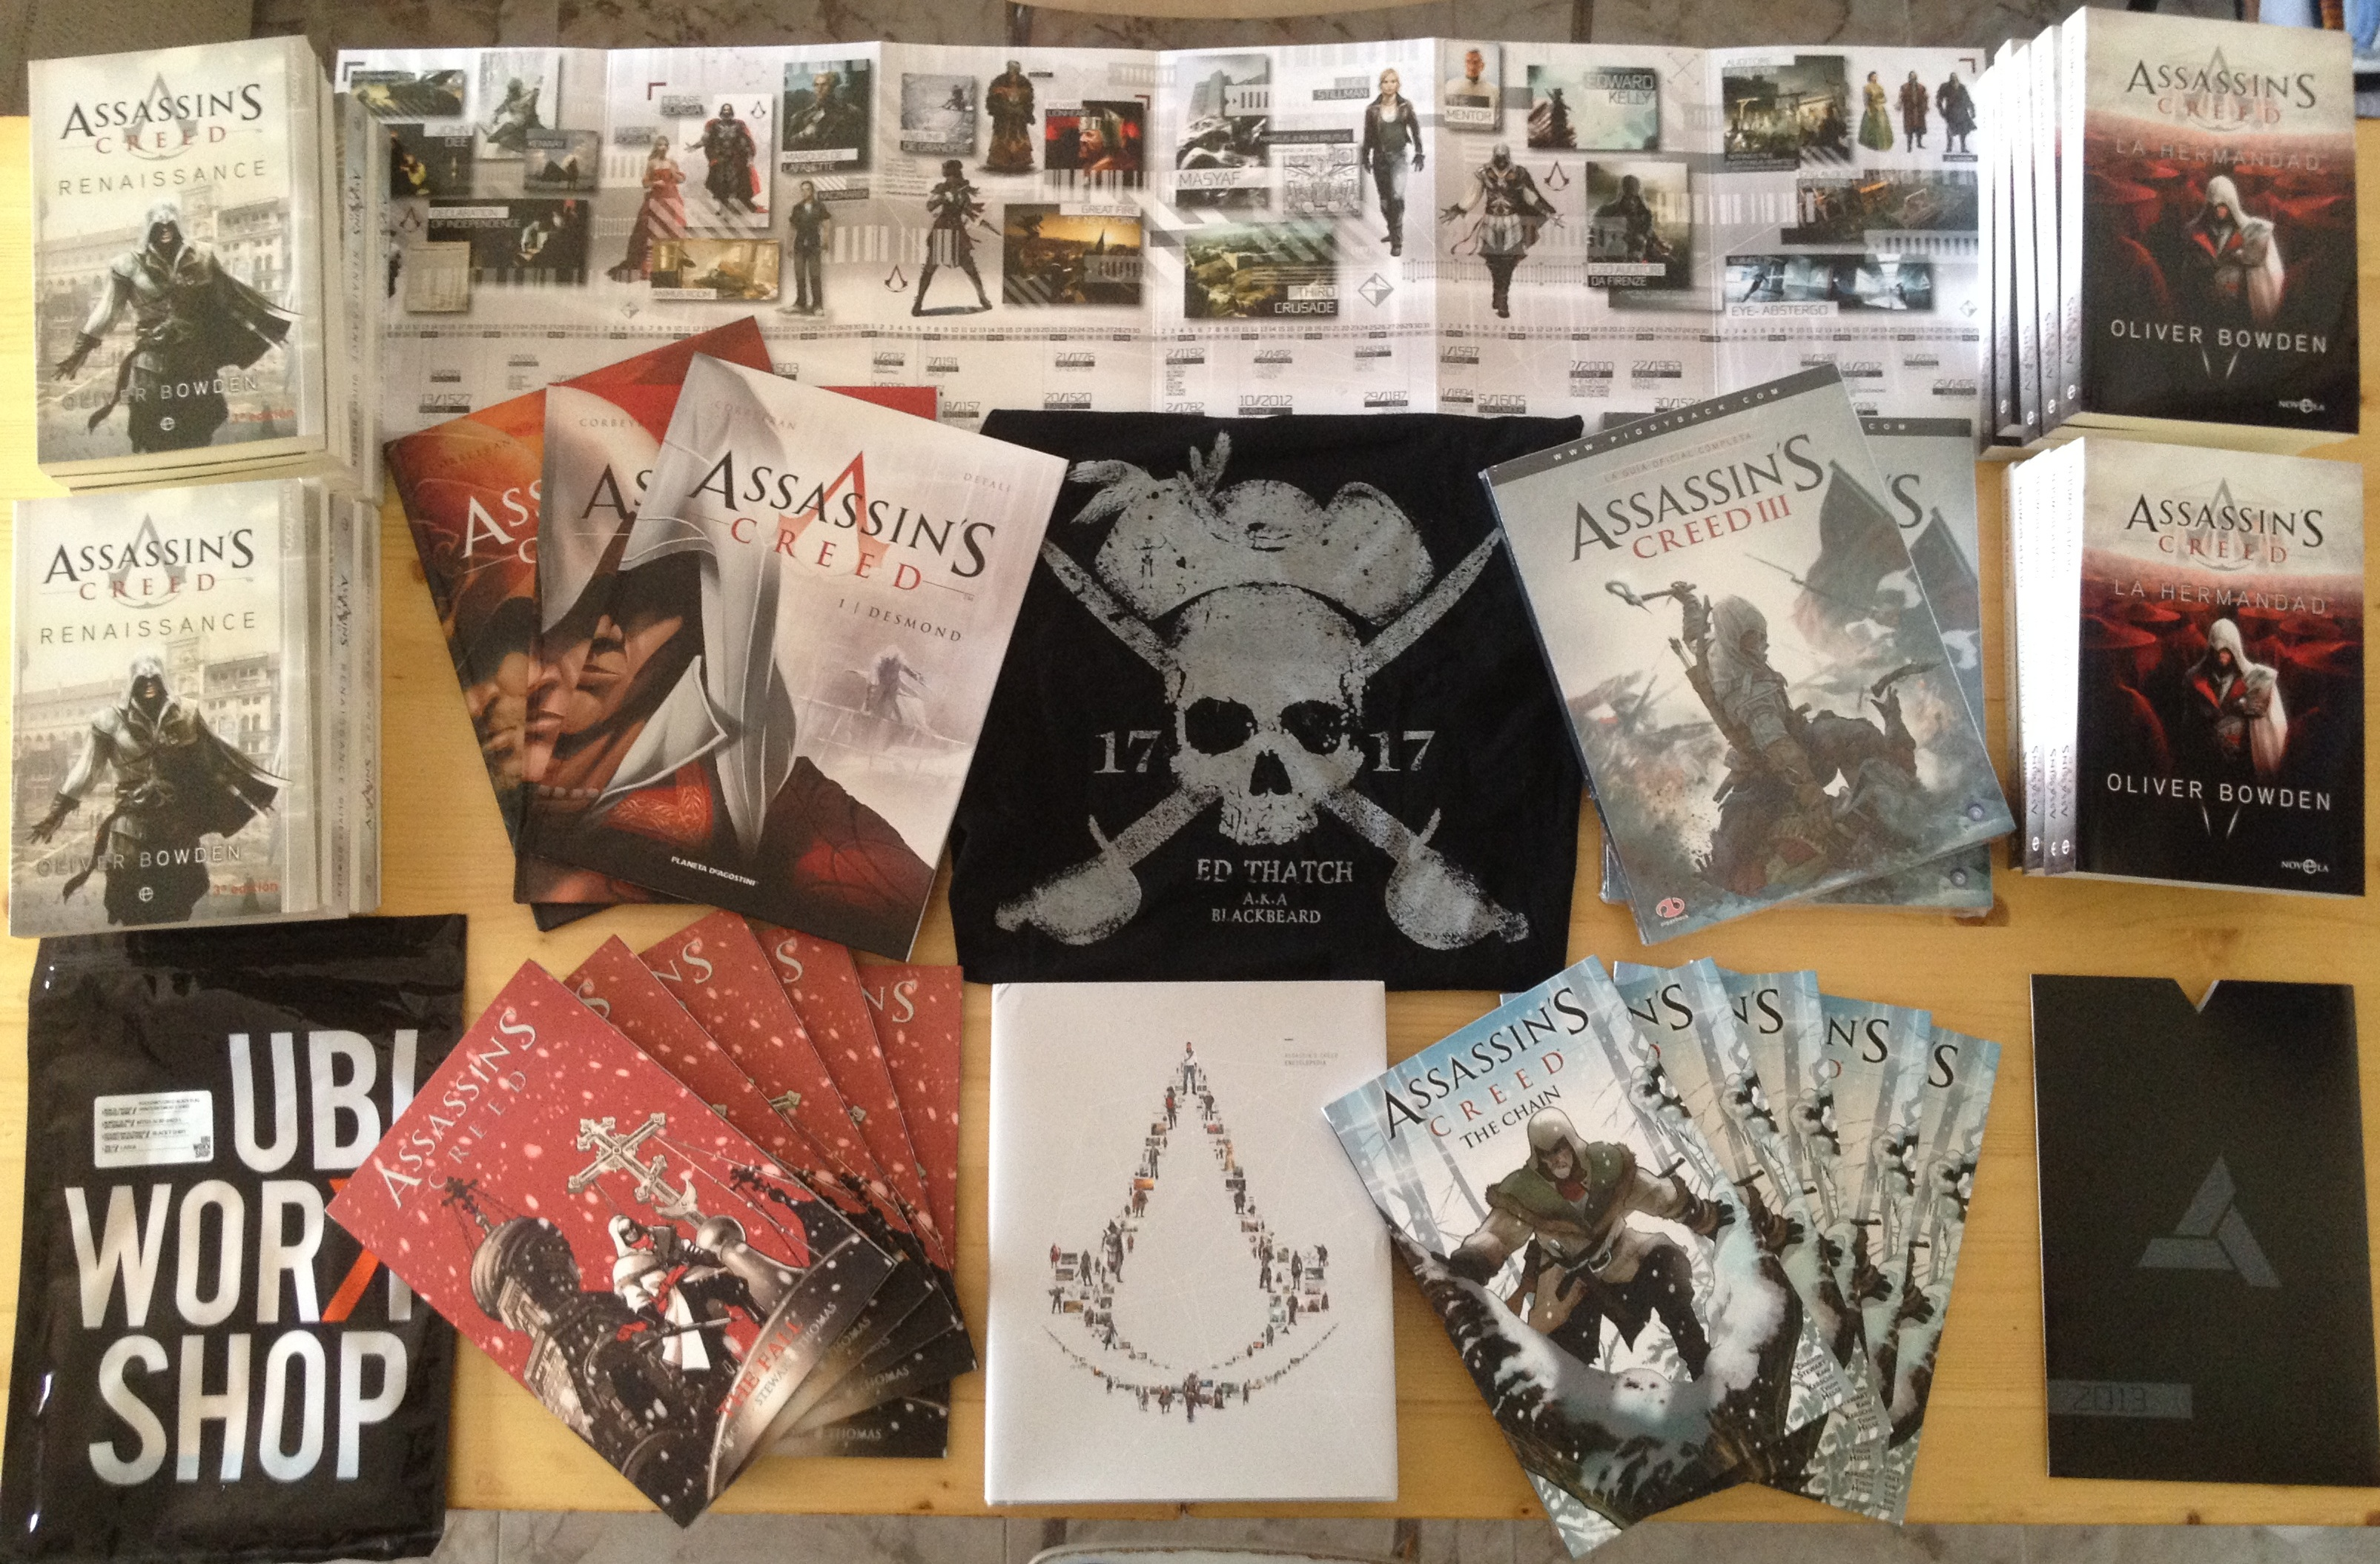 Assassins Creed Libros Assassins Creed The Fall Assassin 39s Creed Center